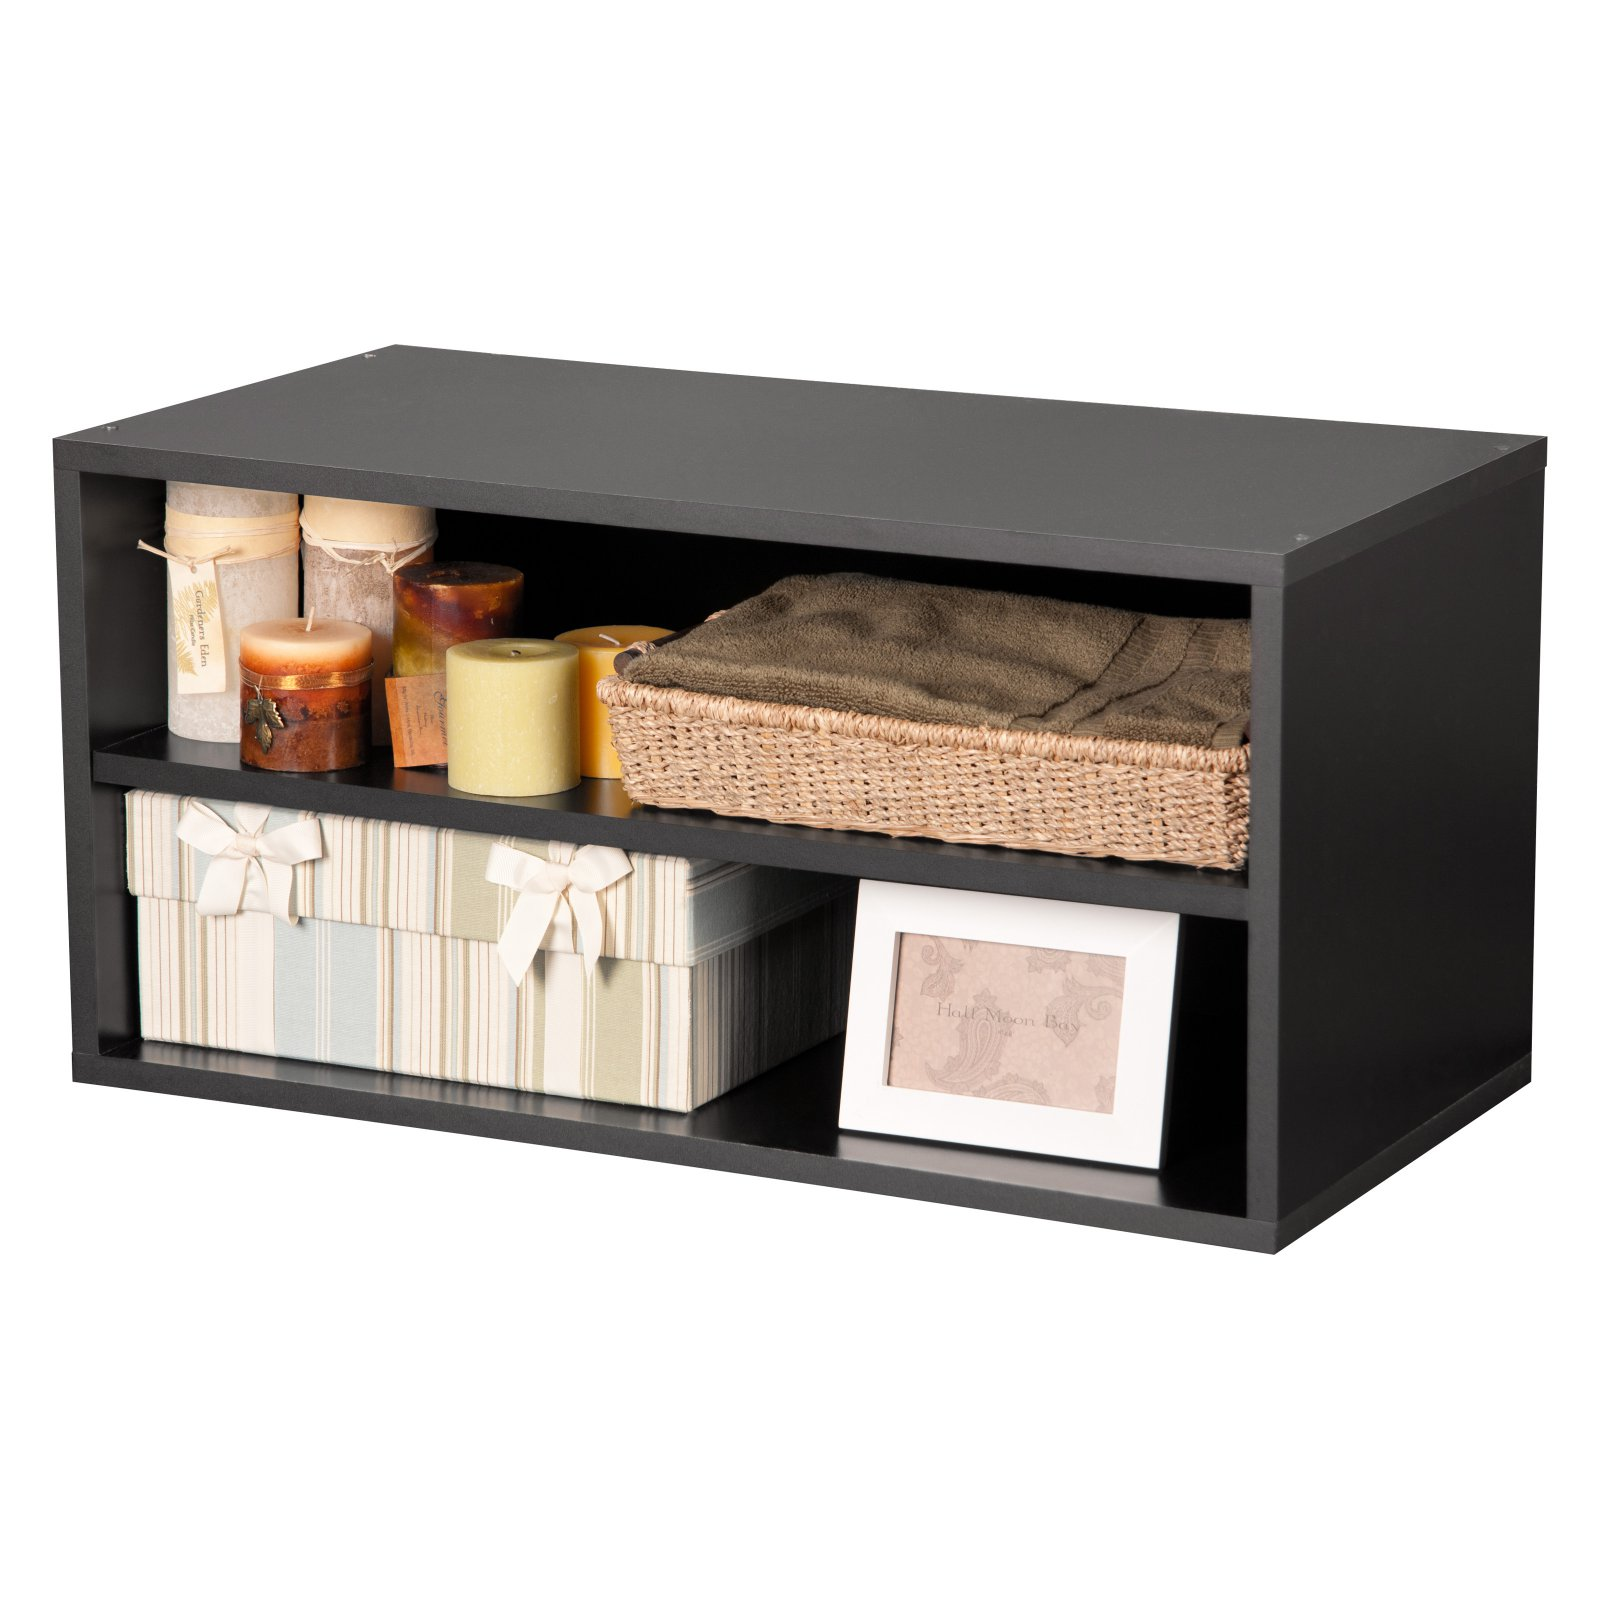 Large Modular Shelf Cube, Black